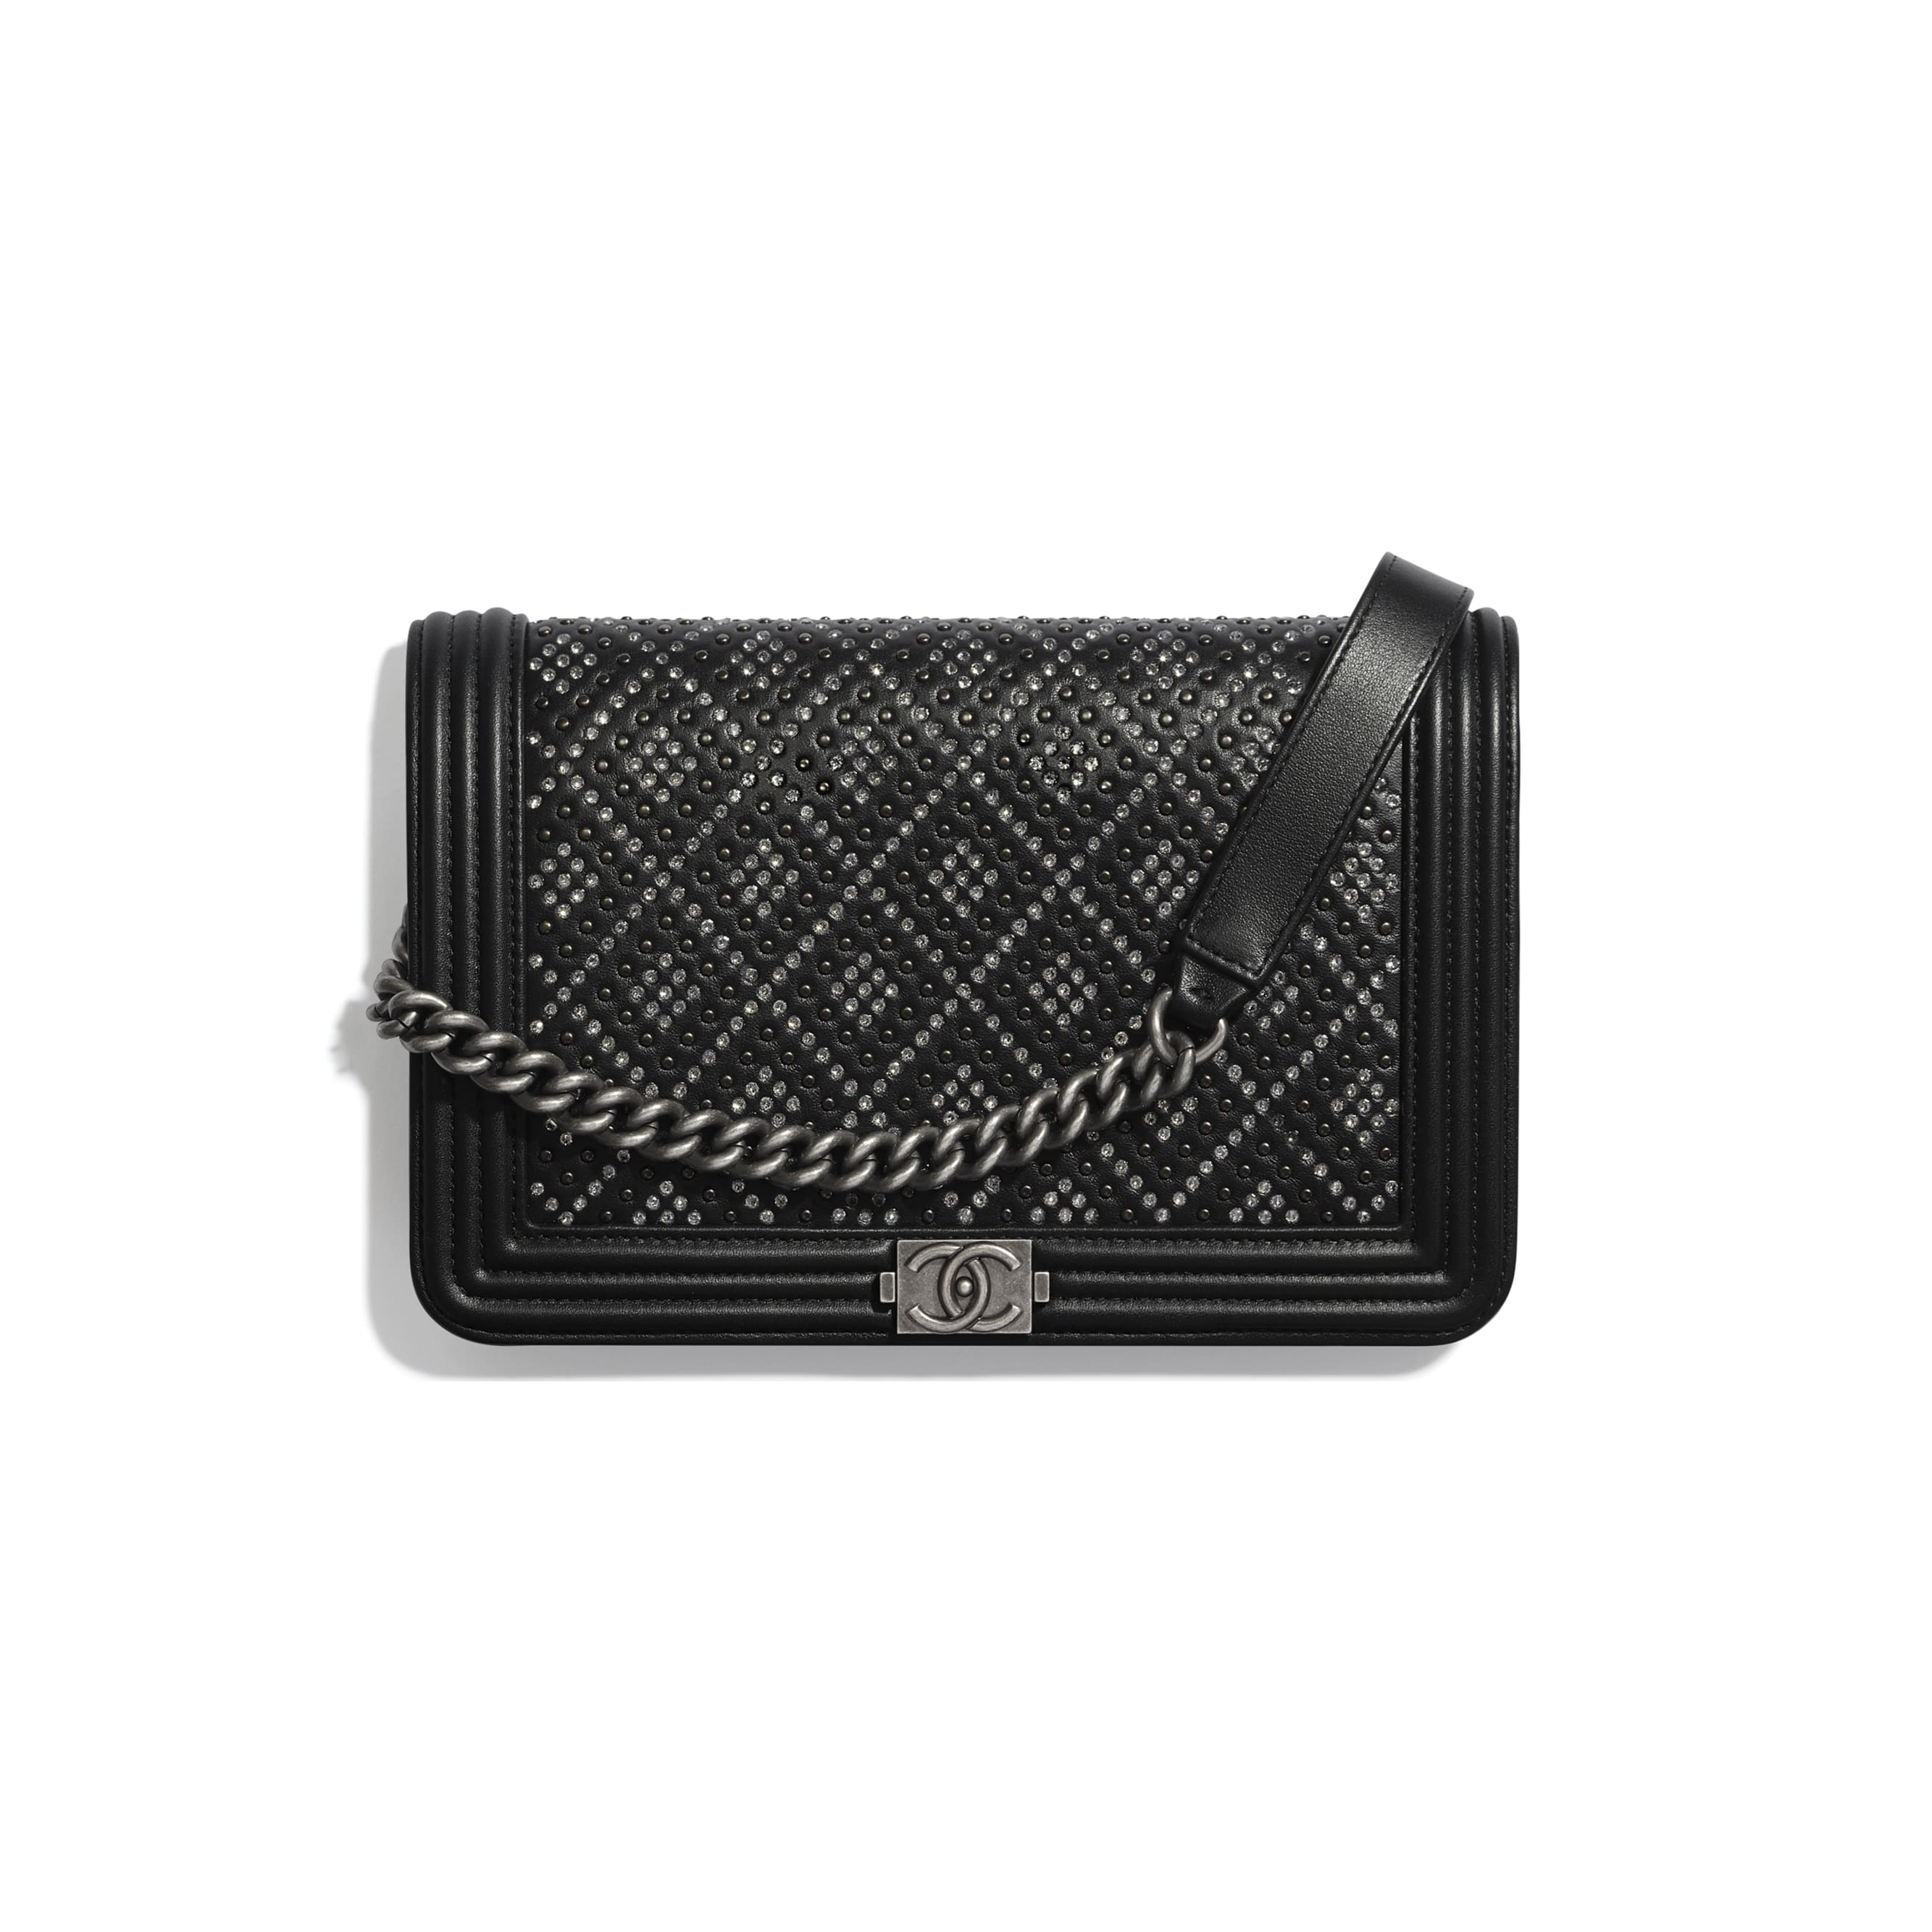 BOY CHANEL Wallet On Chain - Black - Calfskin, Studs, Diamanté & Ruthenium-Finish Metal - Default view - see standard sized version